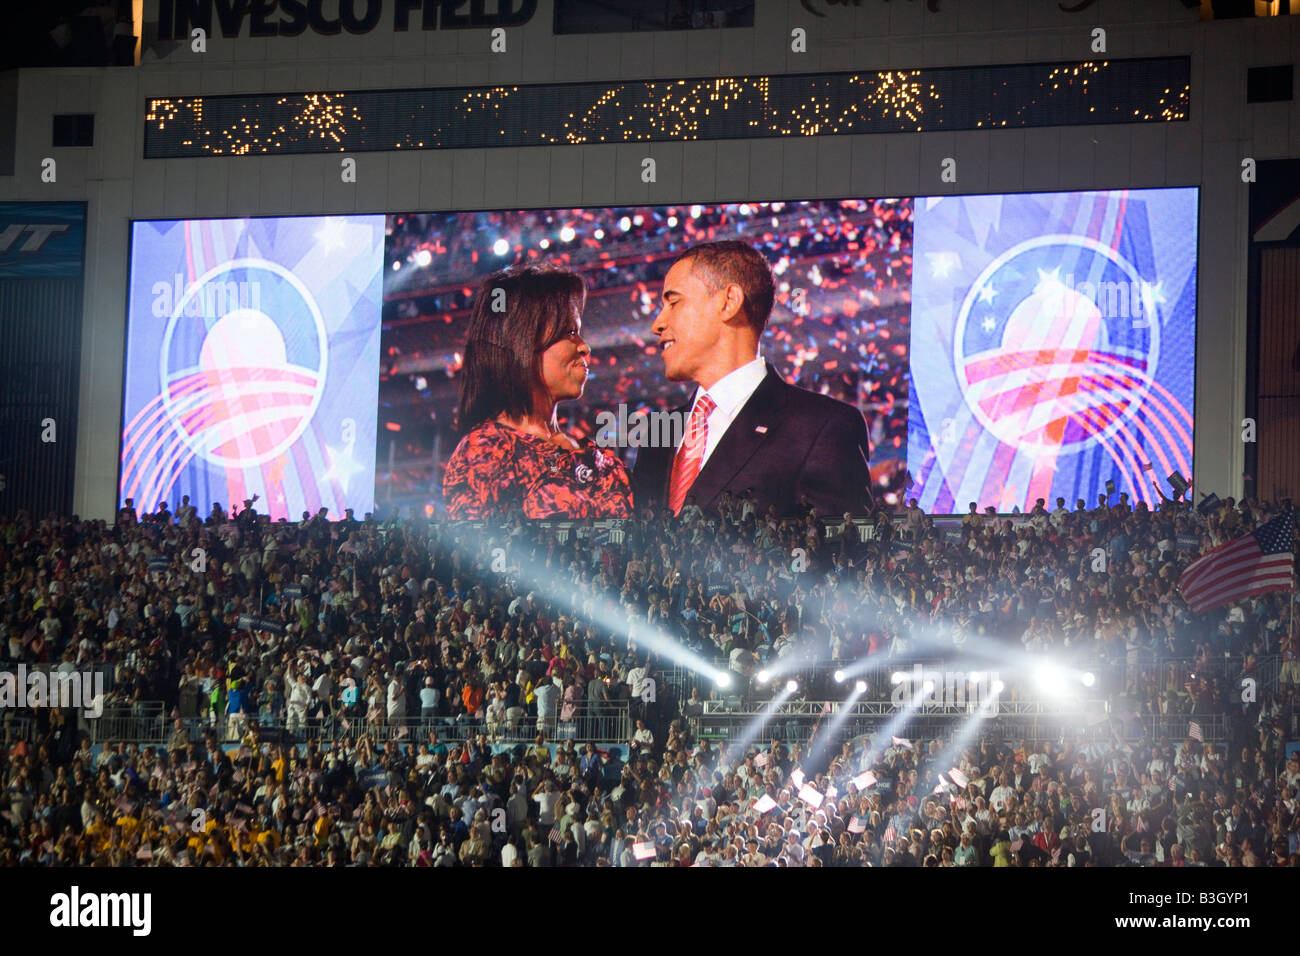 Barack and Michelle Obama embrace after his speech at Invesco Stadium signifying the end of the Democratic National - Stock Image